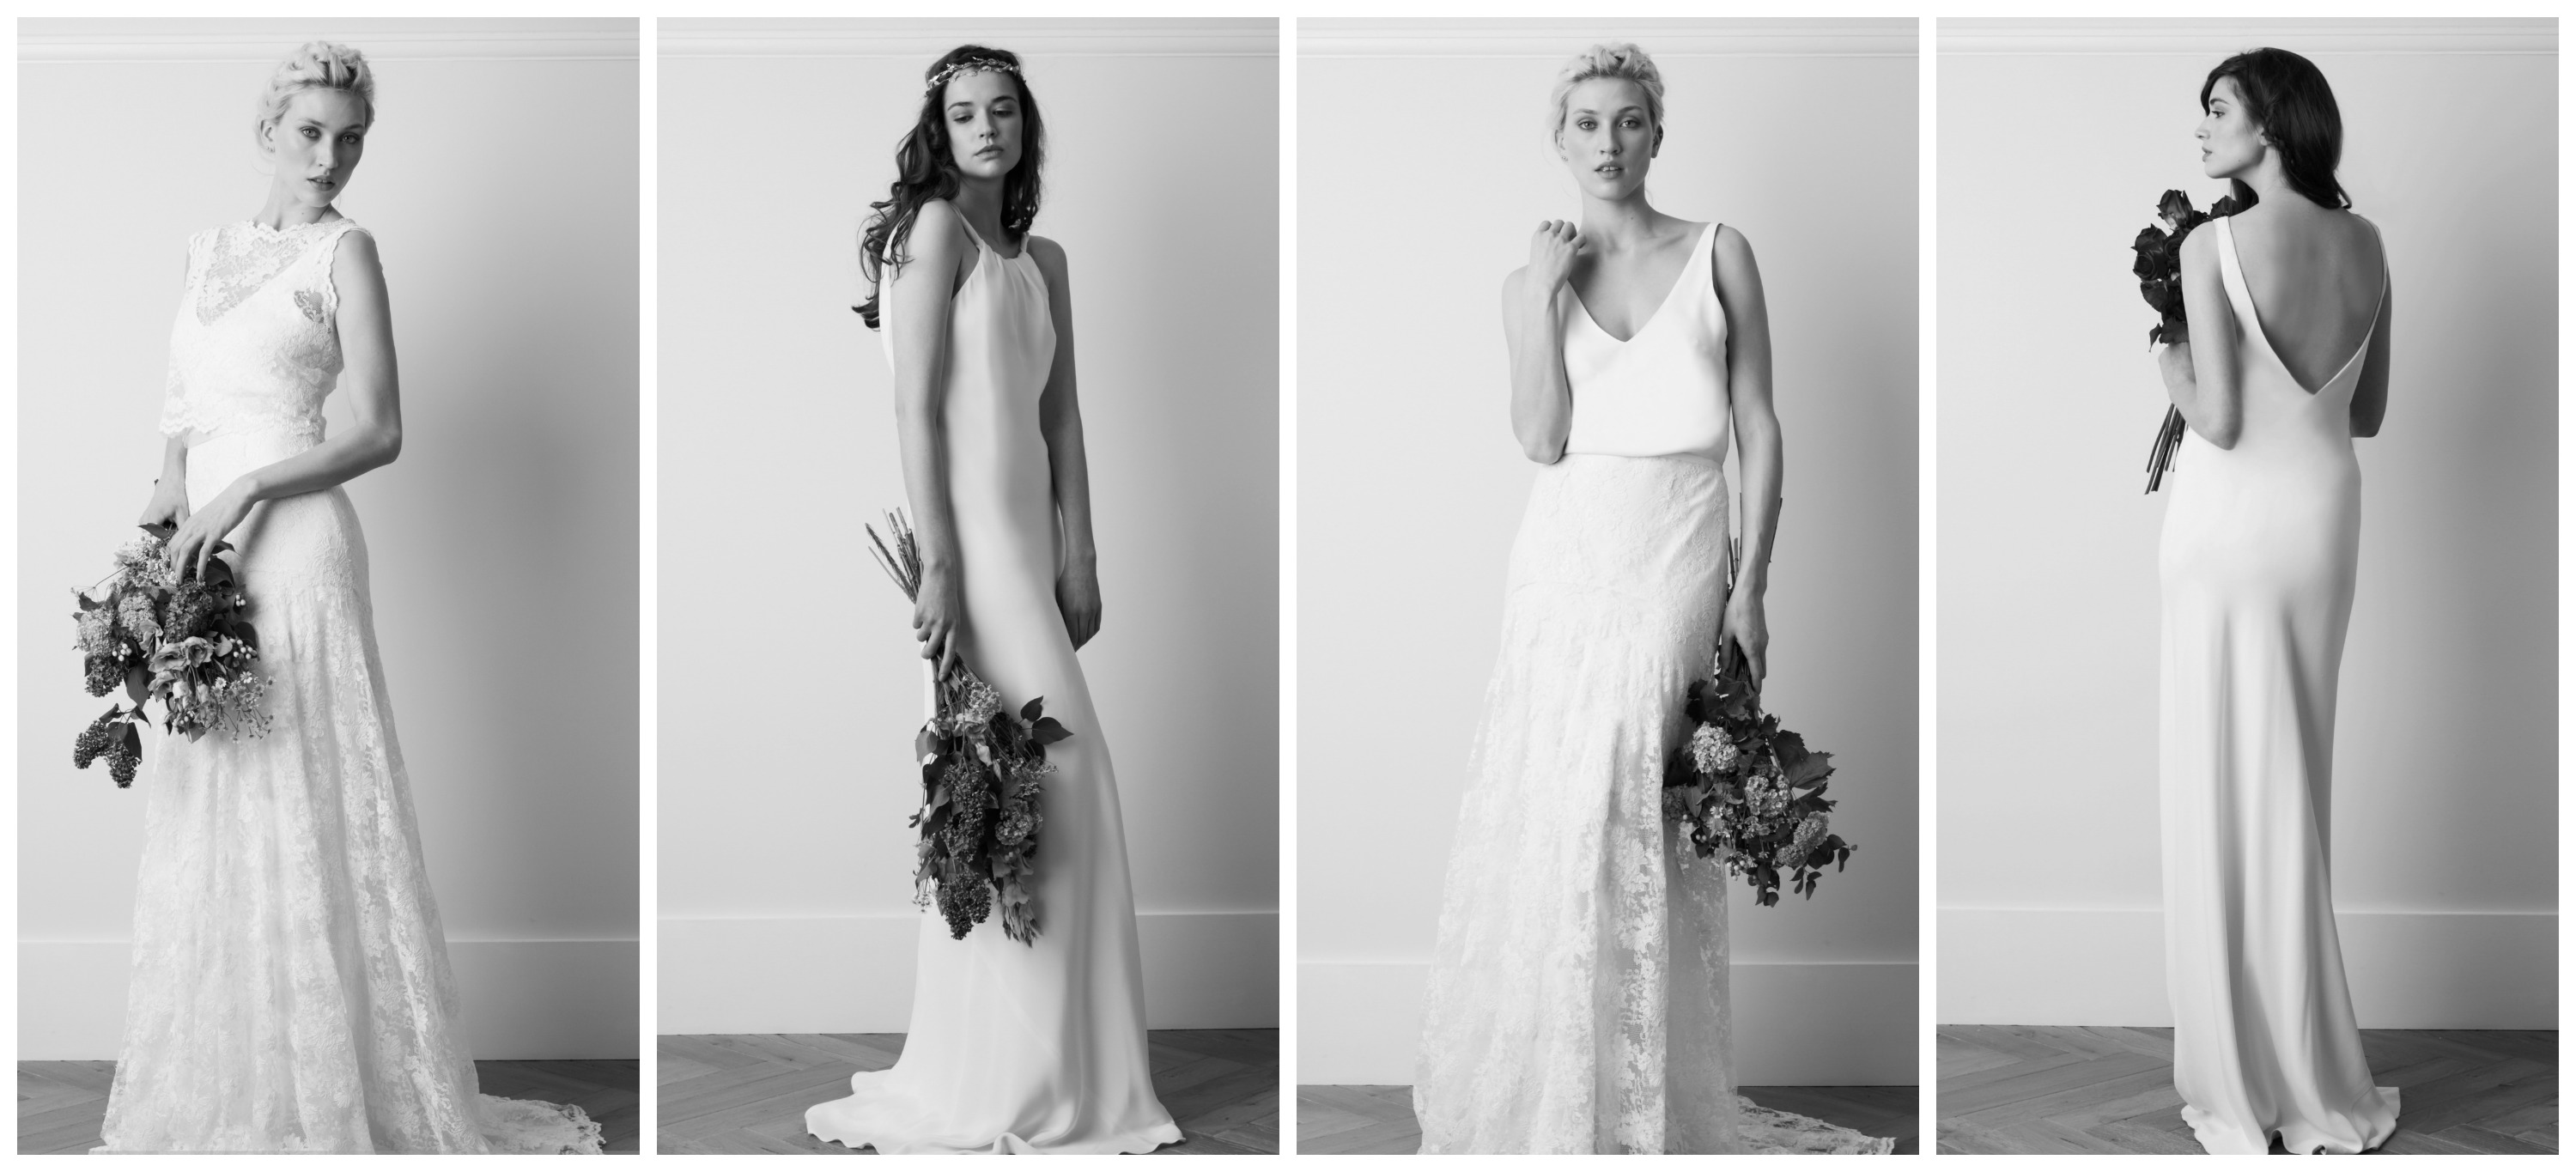 Charlie Brear at Cicily Bridal